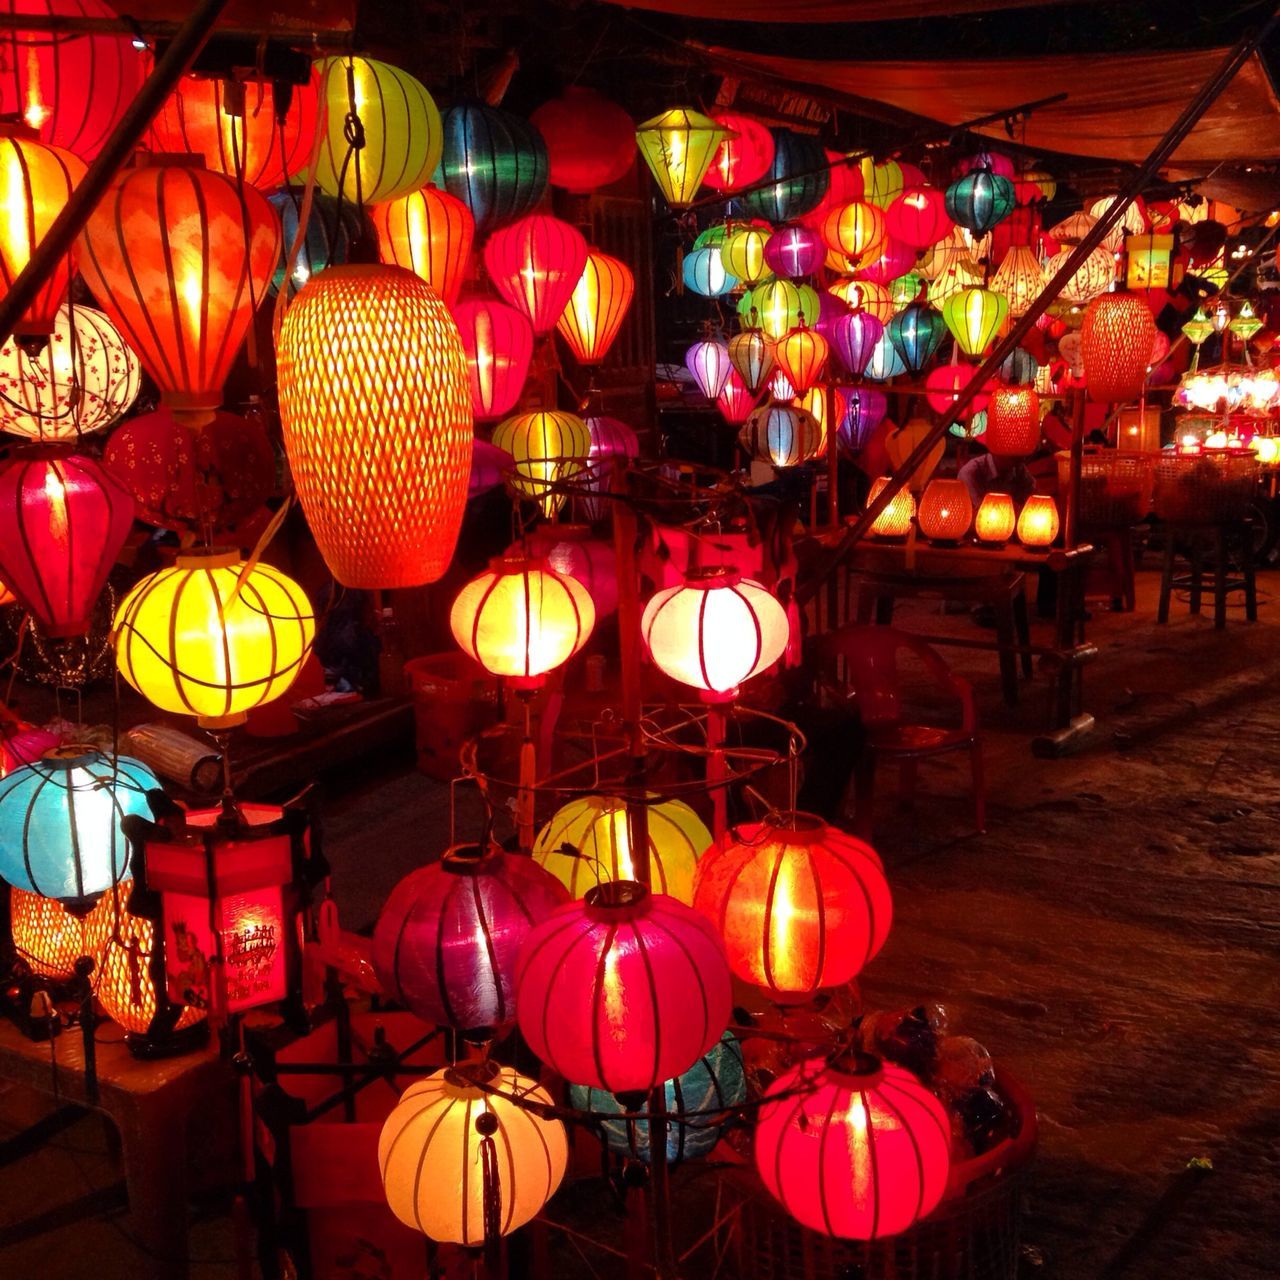 illuminated, lantern, lighting equipment, hanging, decoration, chinese lantern, night, cultures, celebration, traditional festival, chinese lantern festival, large group of objects, tradition, no people, outdoors